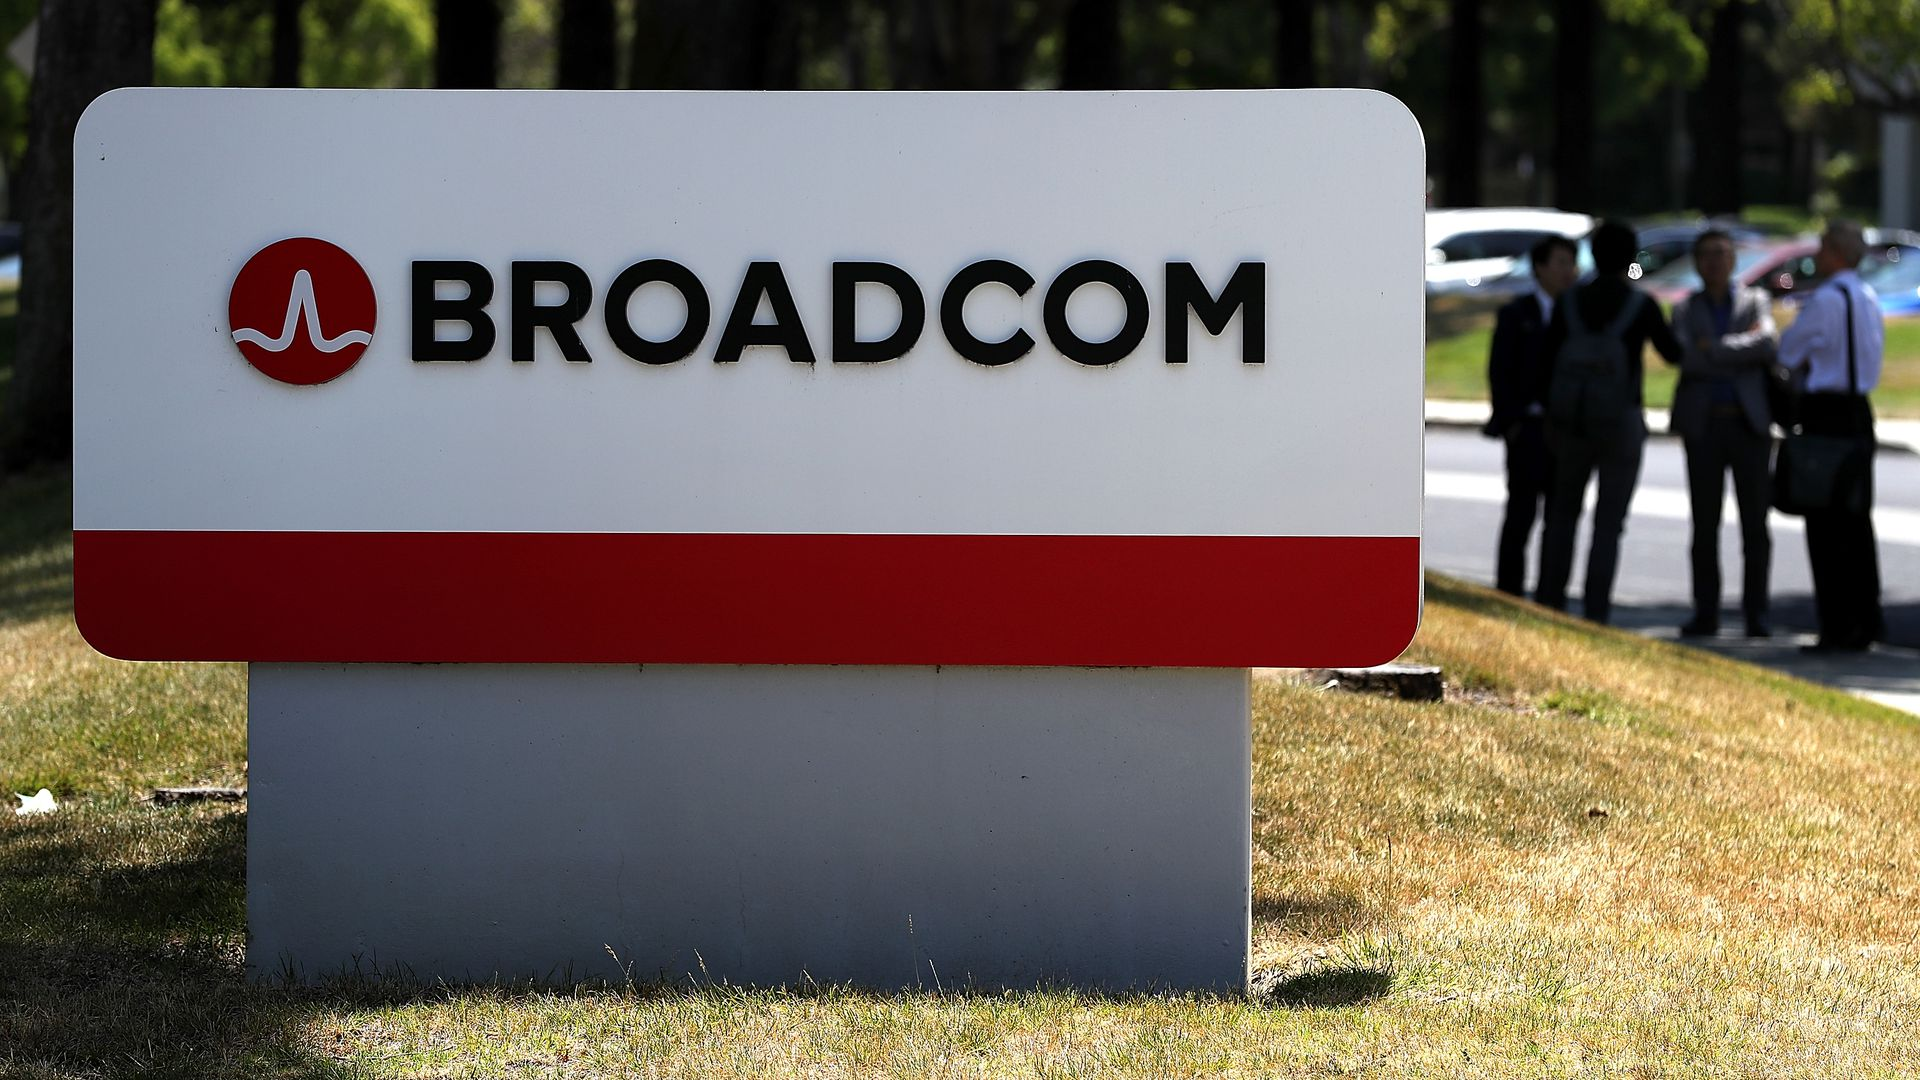 A Broadcom sign outside company offices.